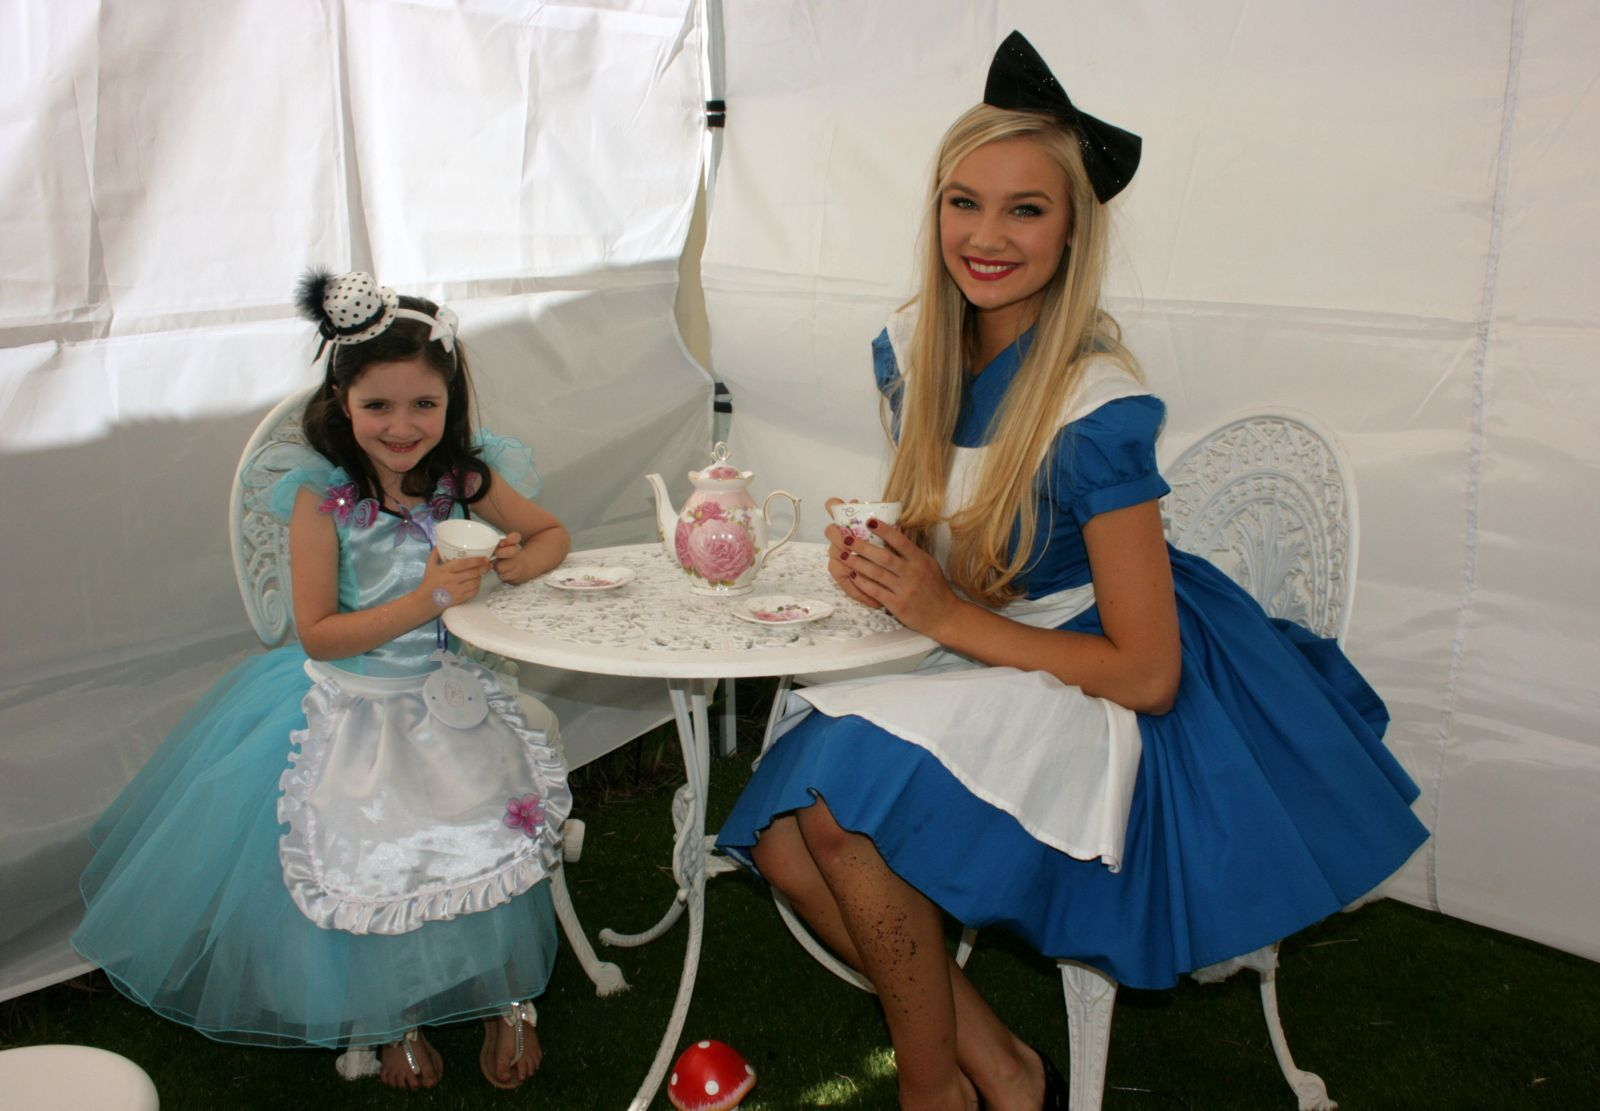 Alice in Wonderland Tea party perth, tea party perth wa, tea party venue perth, alice in wonderland decorations